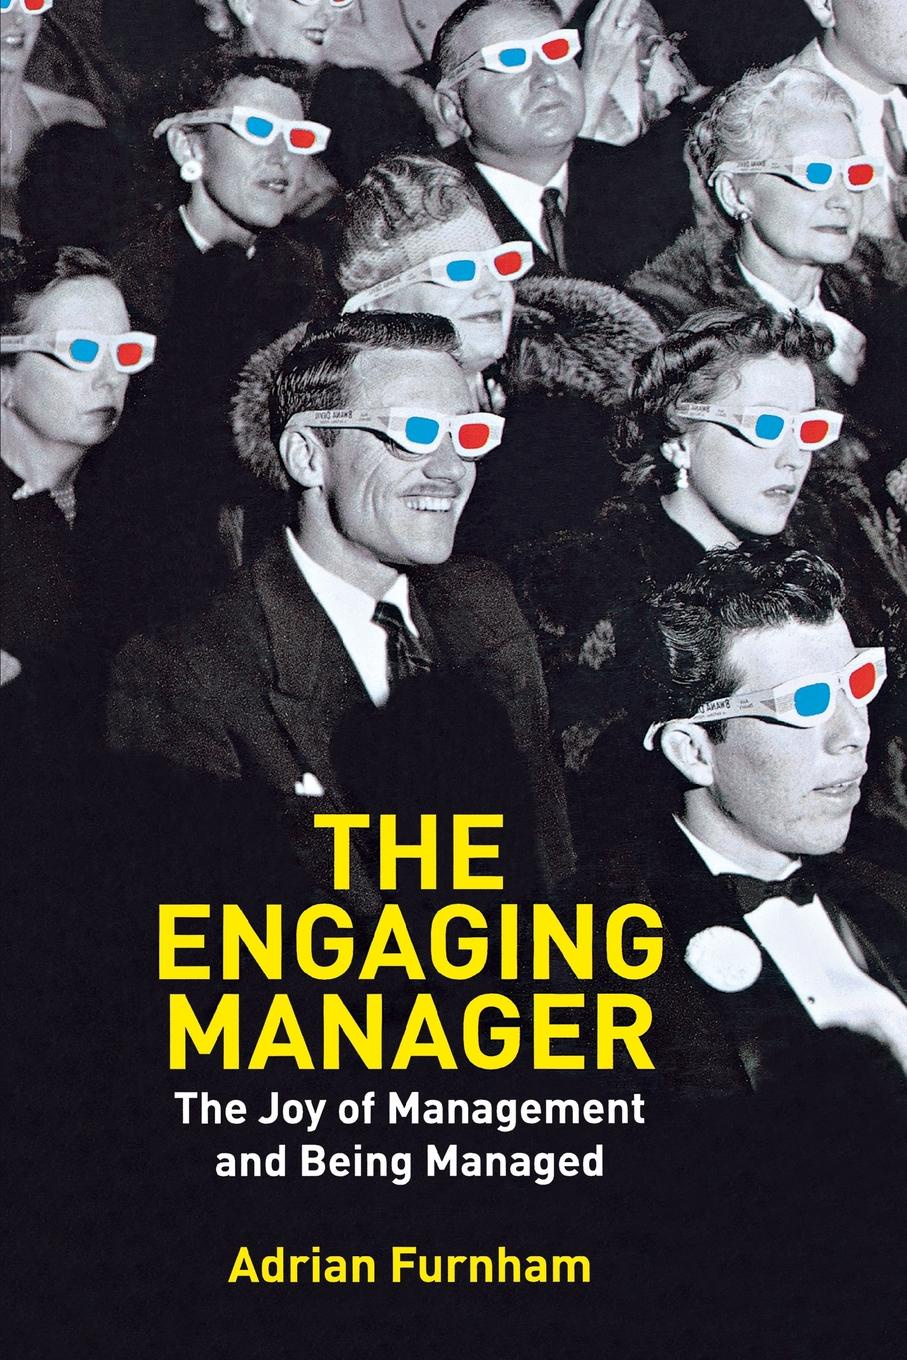 Adrian Furnham The Engaging Manager. The Joy of Management and Being Managed